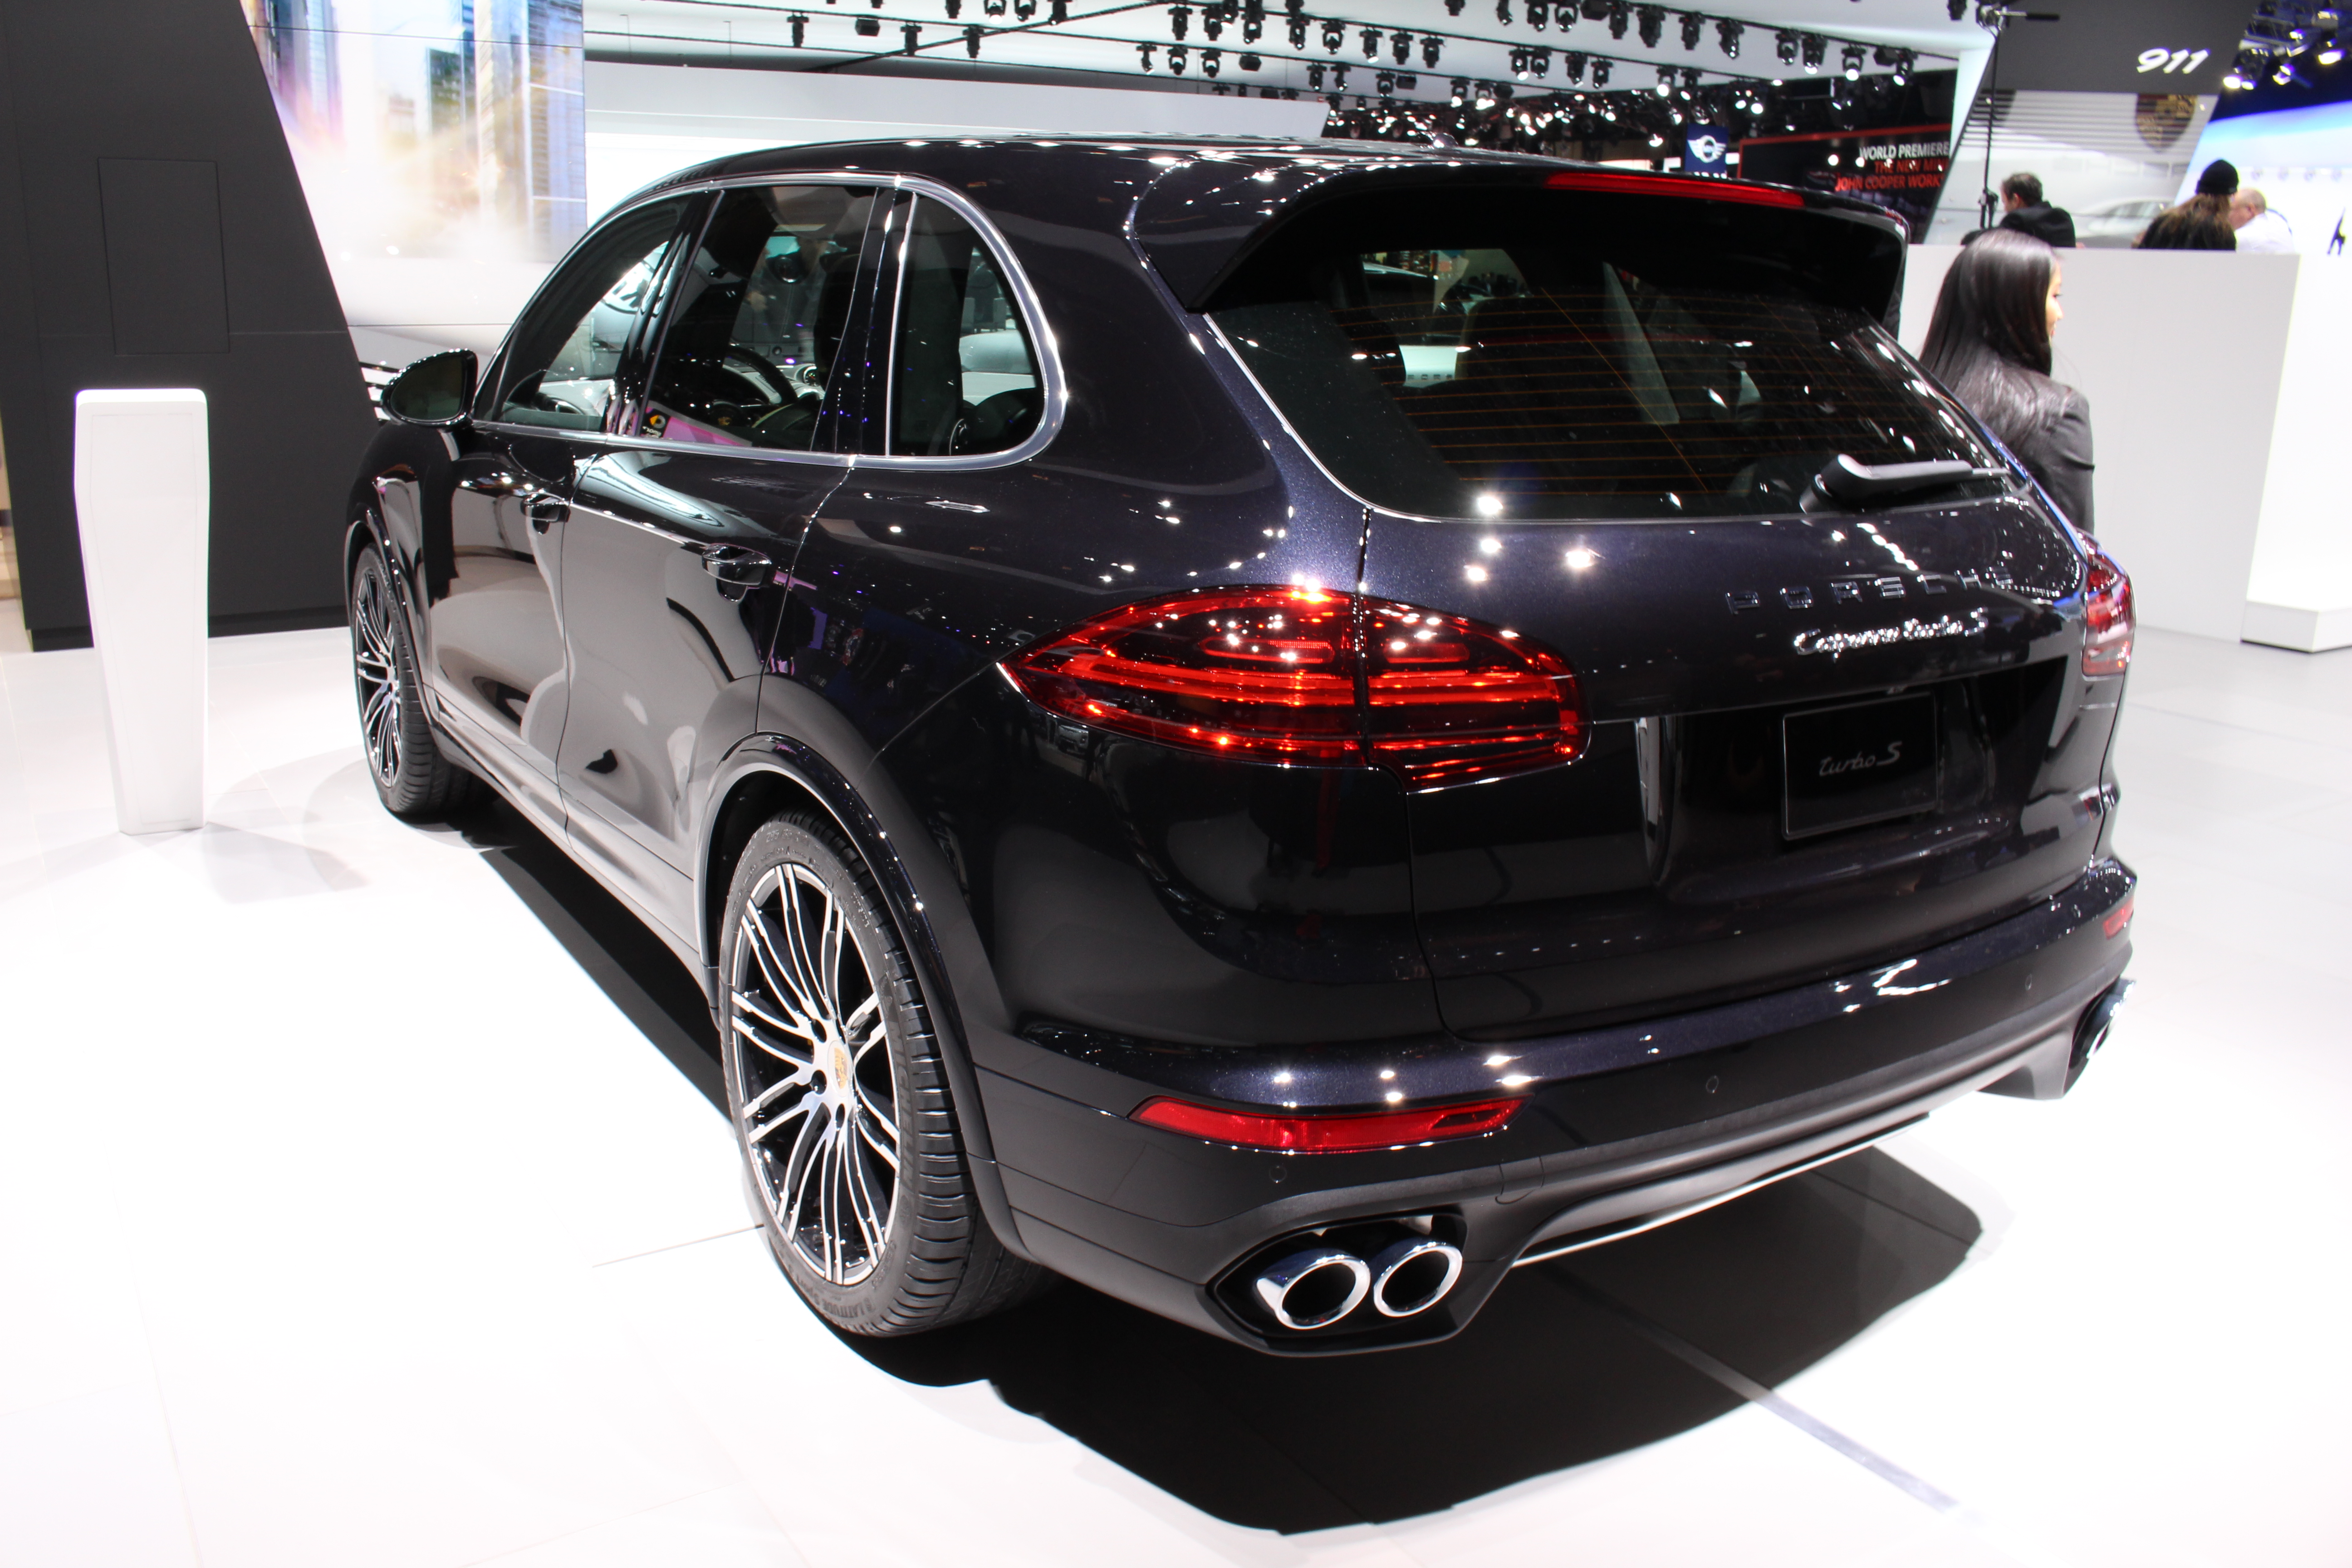 porsche cayenne turbo s 2 published january 12 2015 at 5184 3456 in - Porsche Cayenne Turbo S 2015